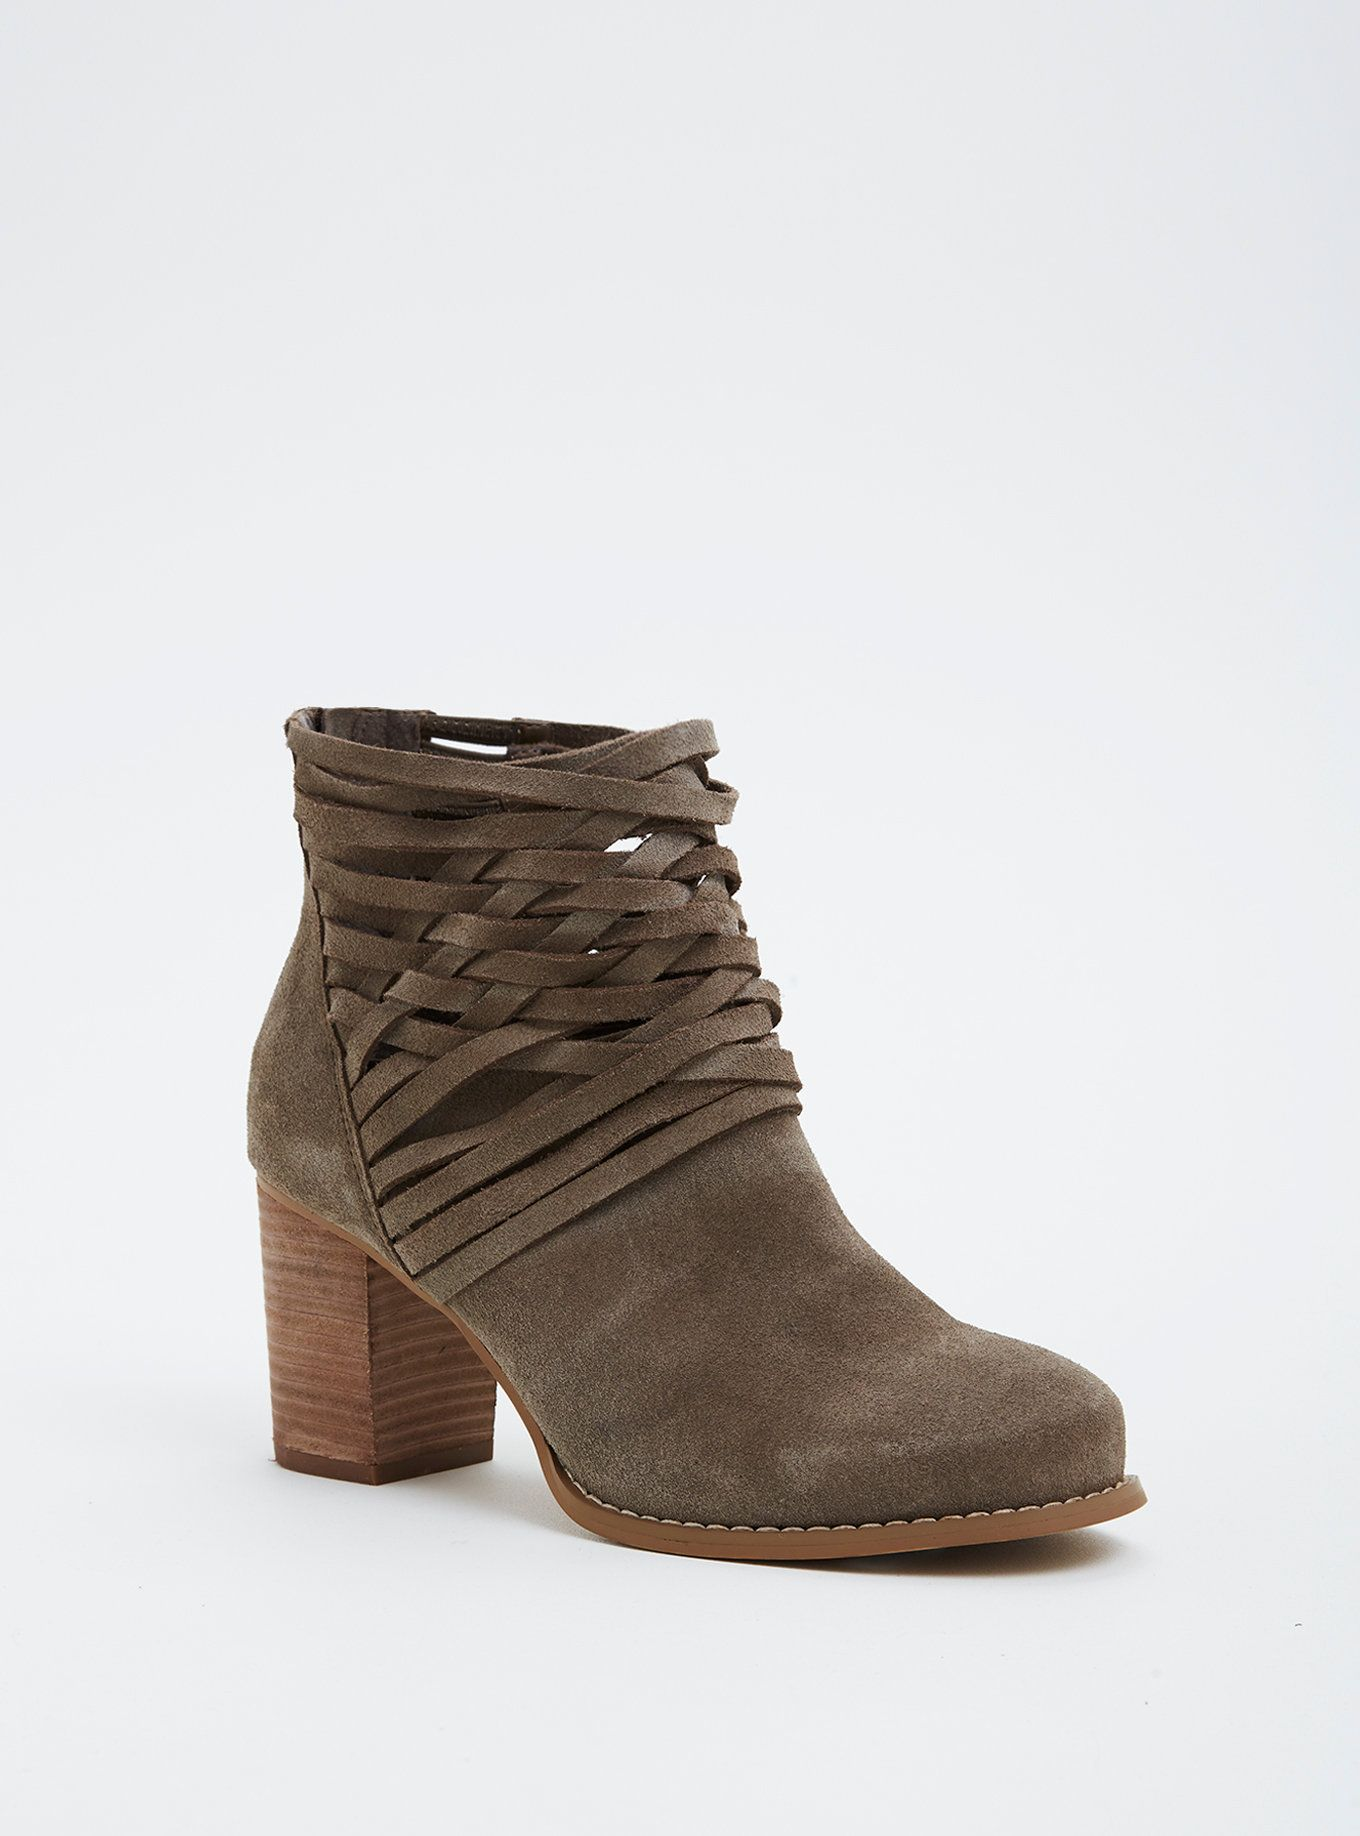 9be510cee790 Whoever said a shoe can change your life was obviously talking about these  booties. The